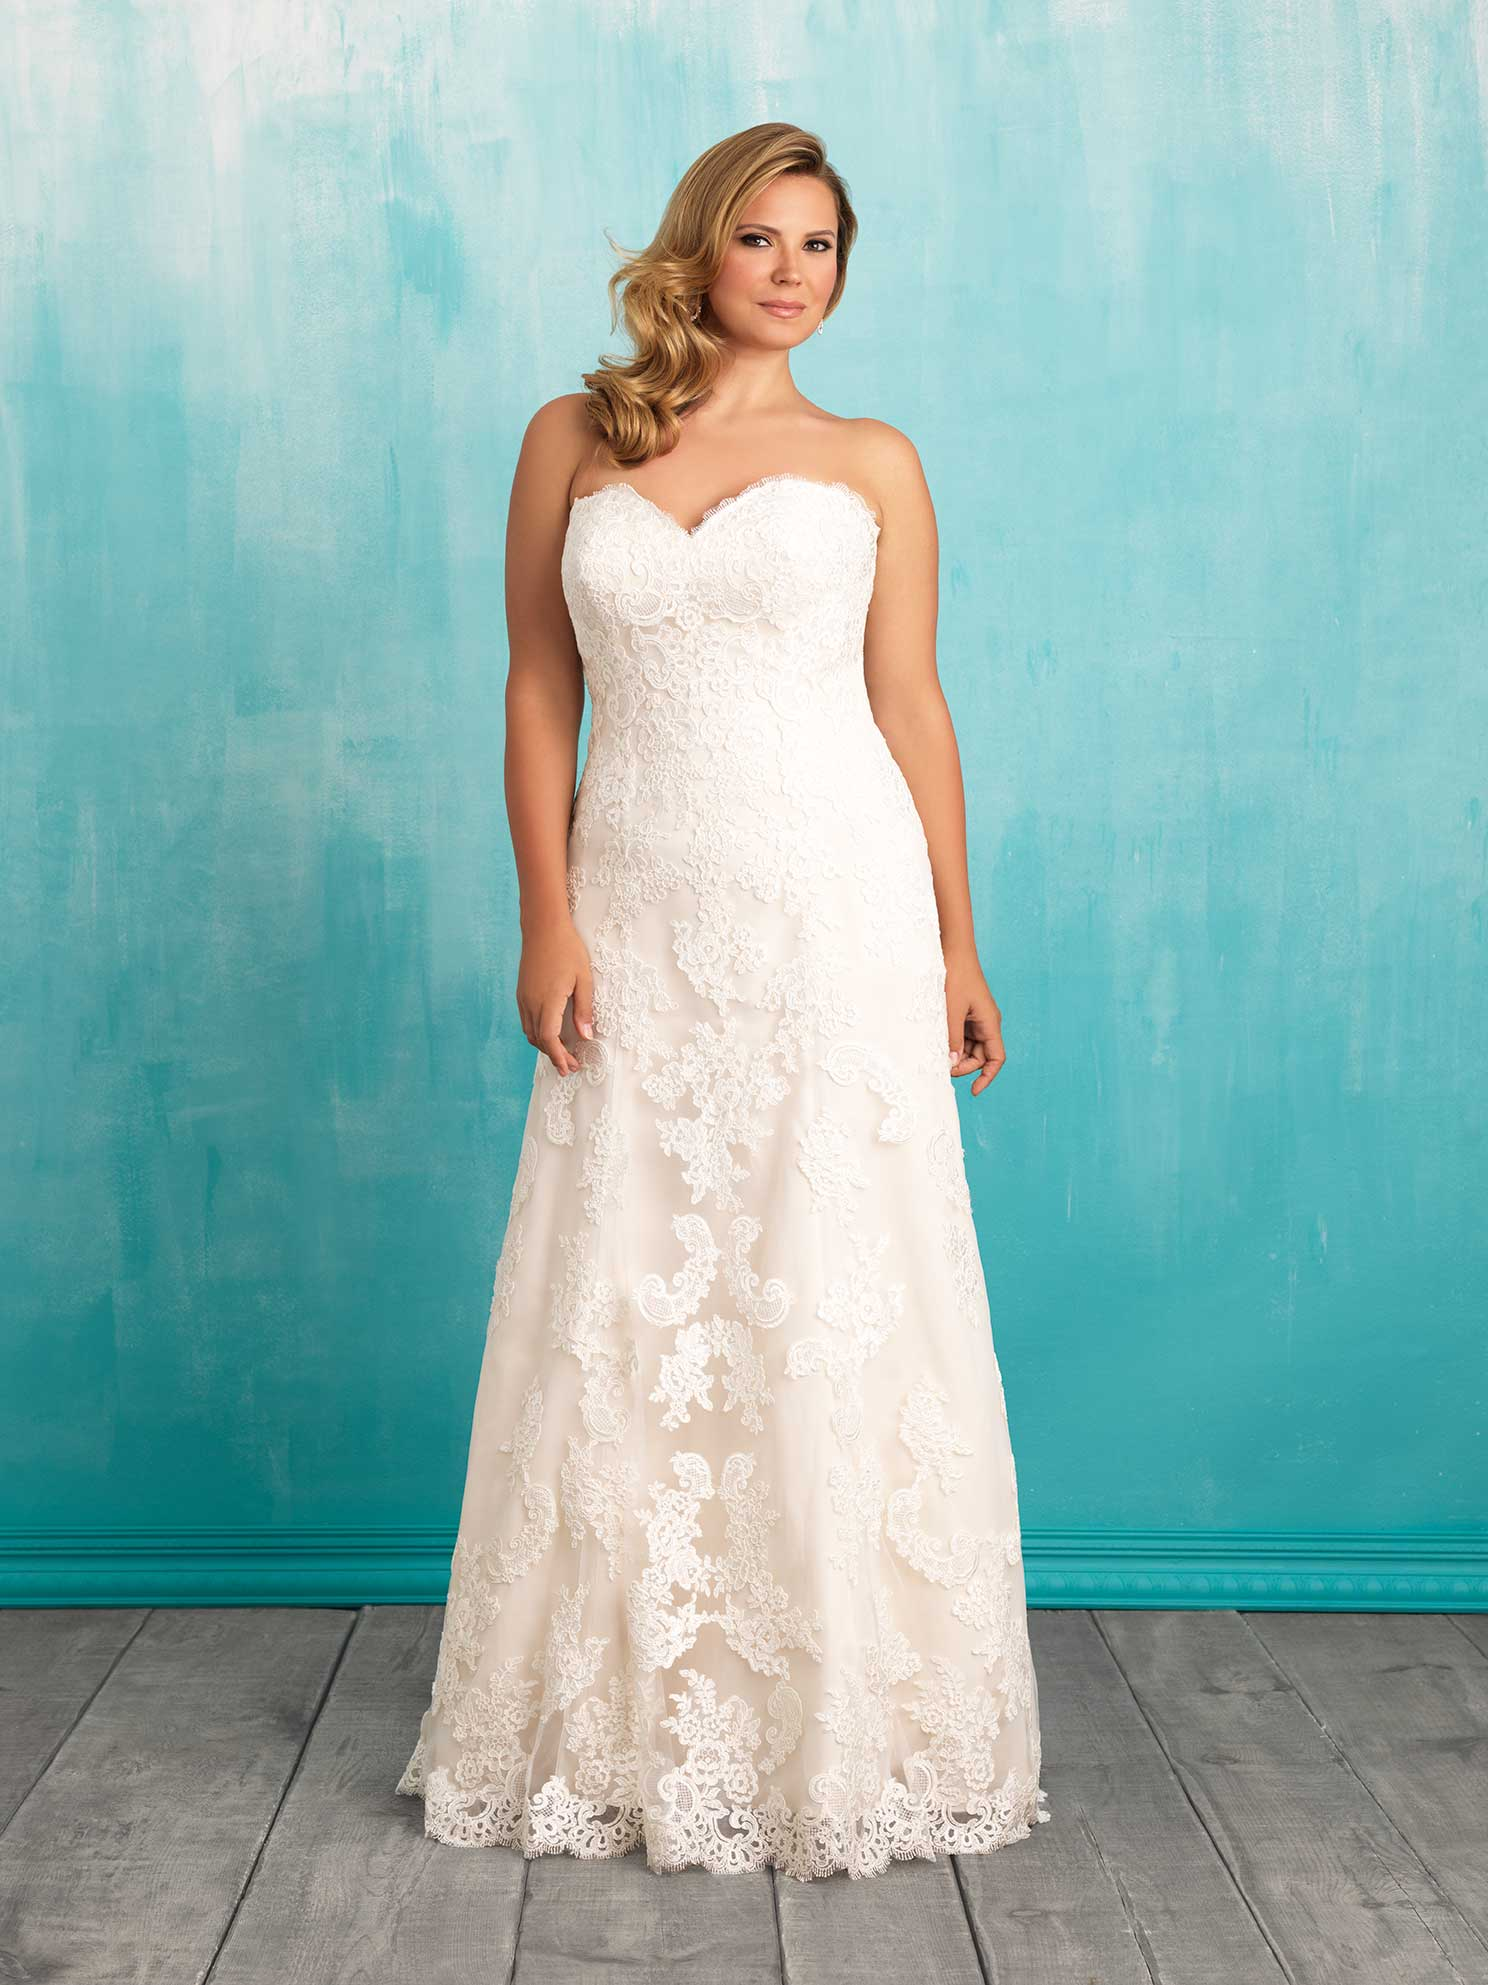 Lori G Wedding Dresses : W by allure bridal from lori g derby